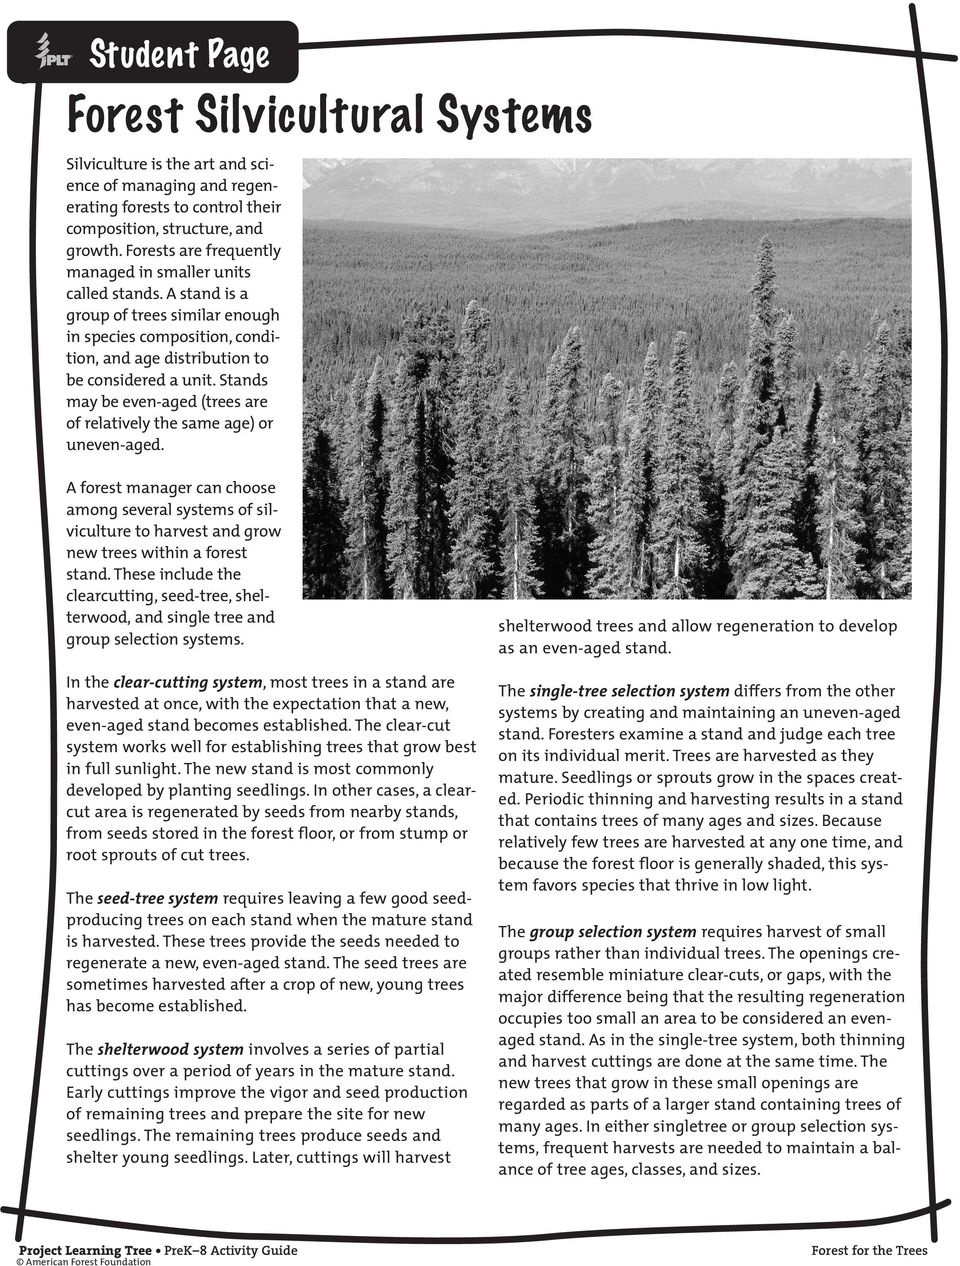 Stands may be even-aged (trees are of relatively the same age) or uneven-aged. A forest manager can choose among several systems of silviculture to harvest and grow new trees within a forest stand.